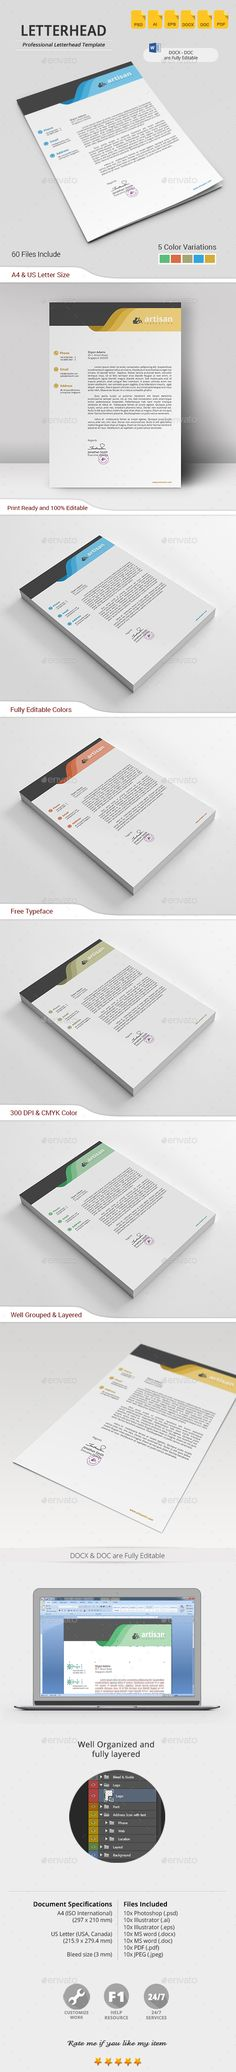 Buy Letterhead by artisanHR on GraphicRiver. Letterhead A simple unique letterhead for all kind of business and personal purpose usages. This file is easy to edi. Letterhead Business, Letterhead Design, Letterhead Template, Branding Design, Letter Templates, Print Templates, Design Templates, Form Design, Elements Of Design